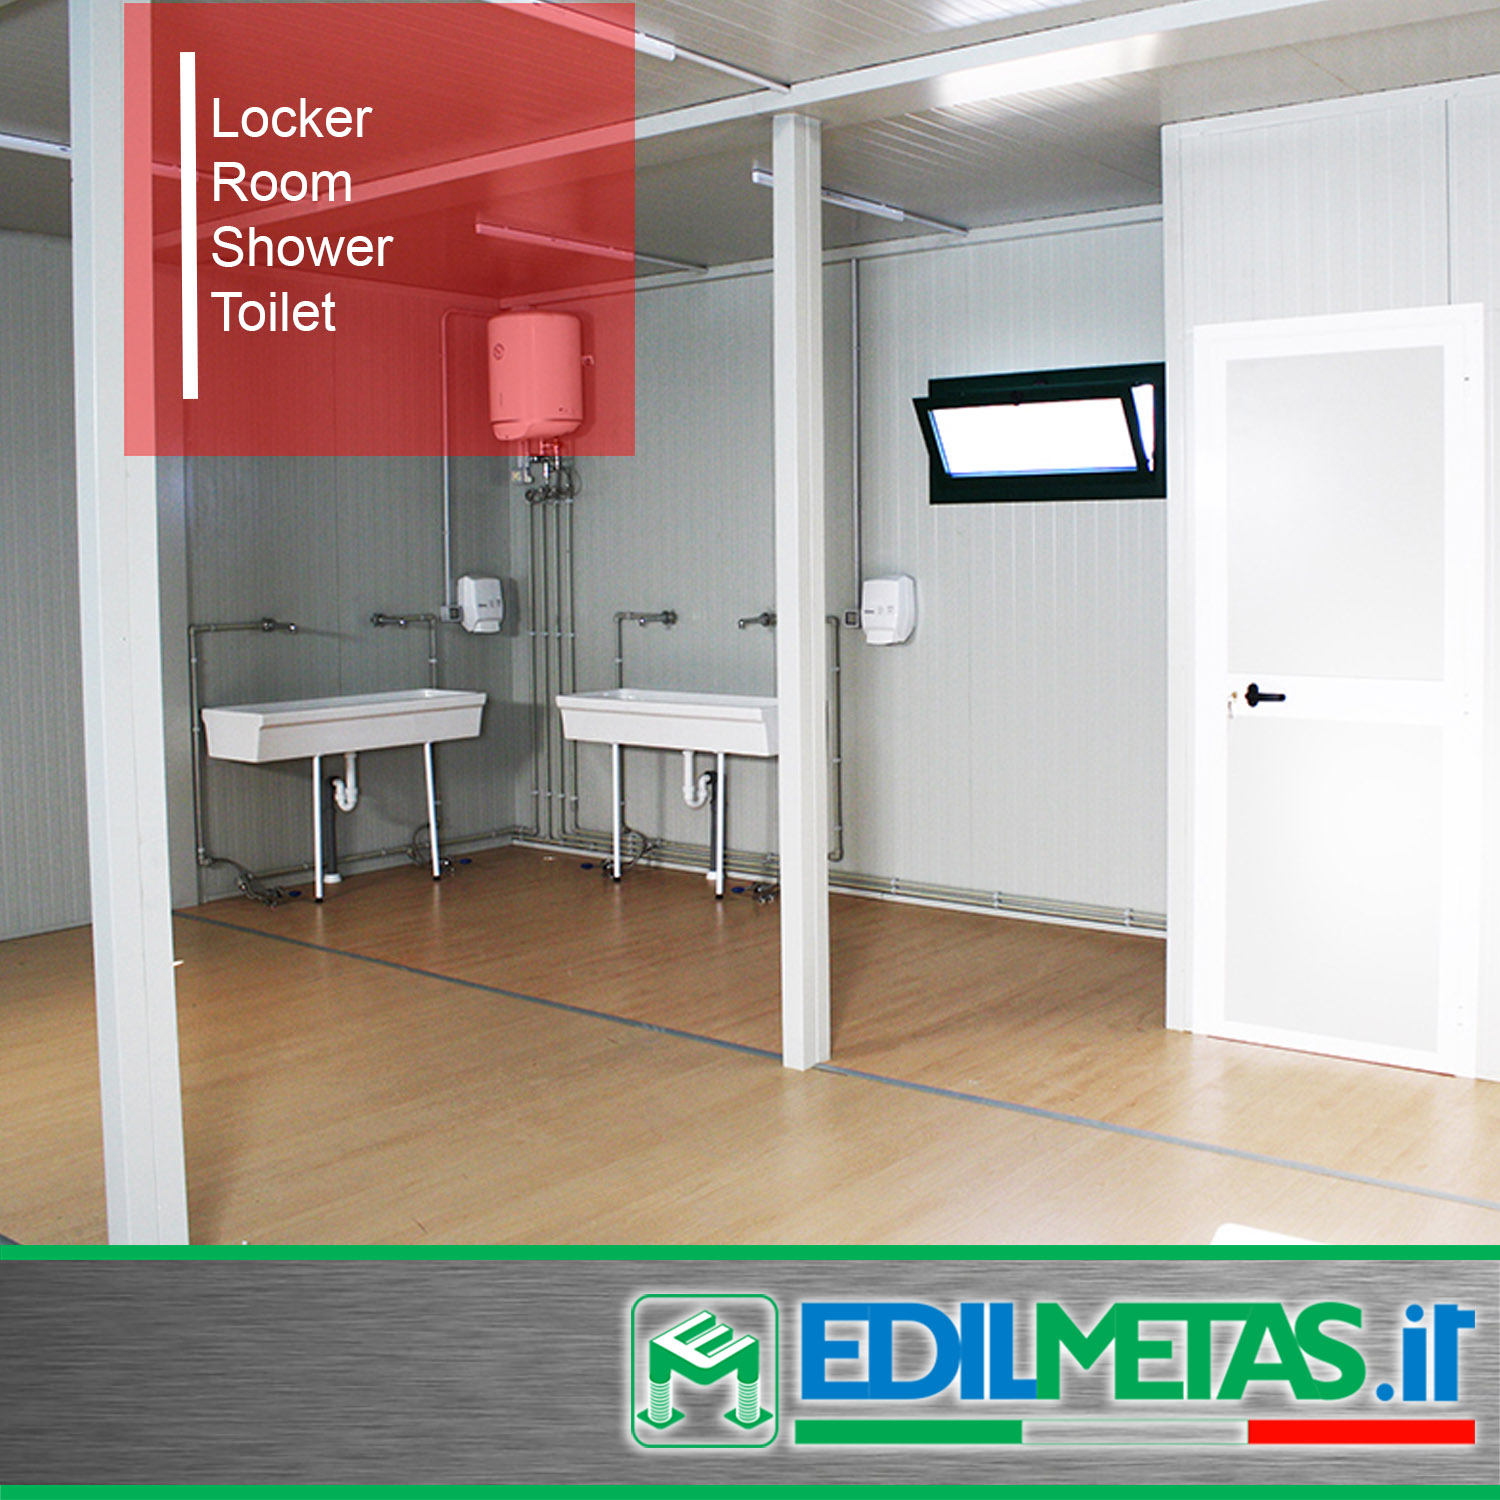 prefabricated locker shower and toilet